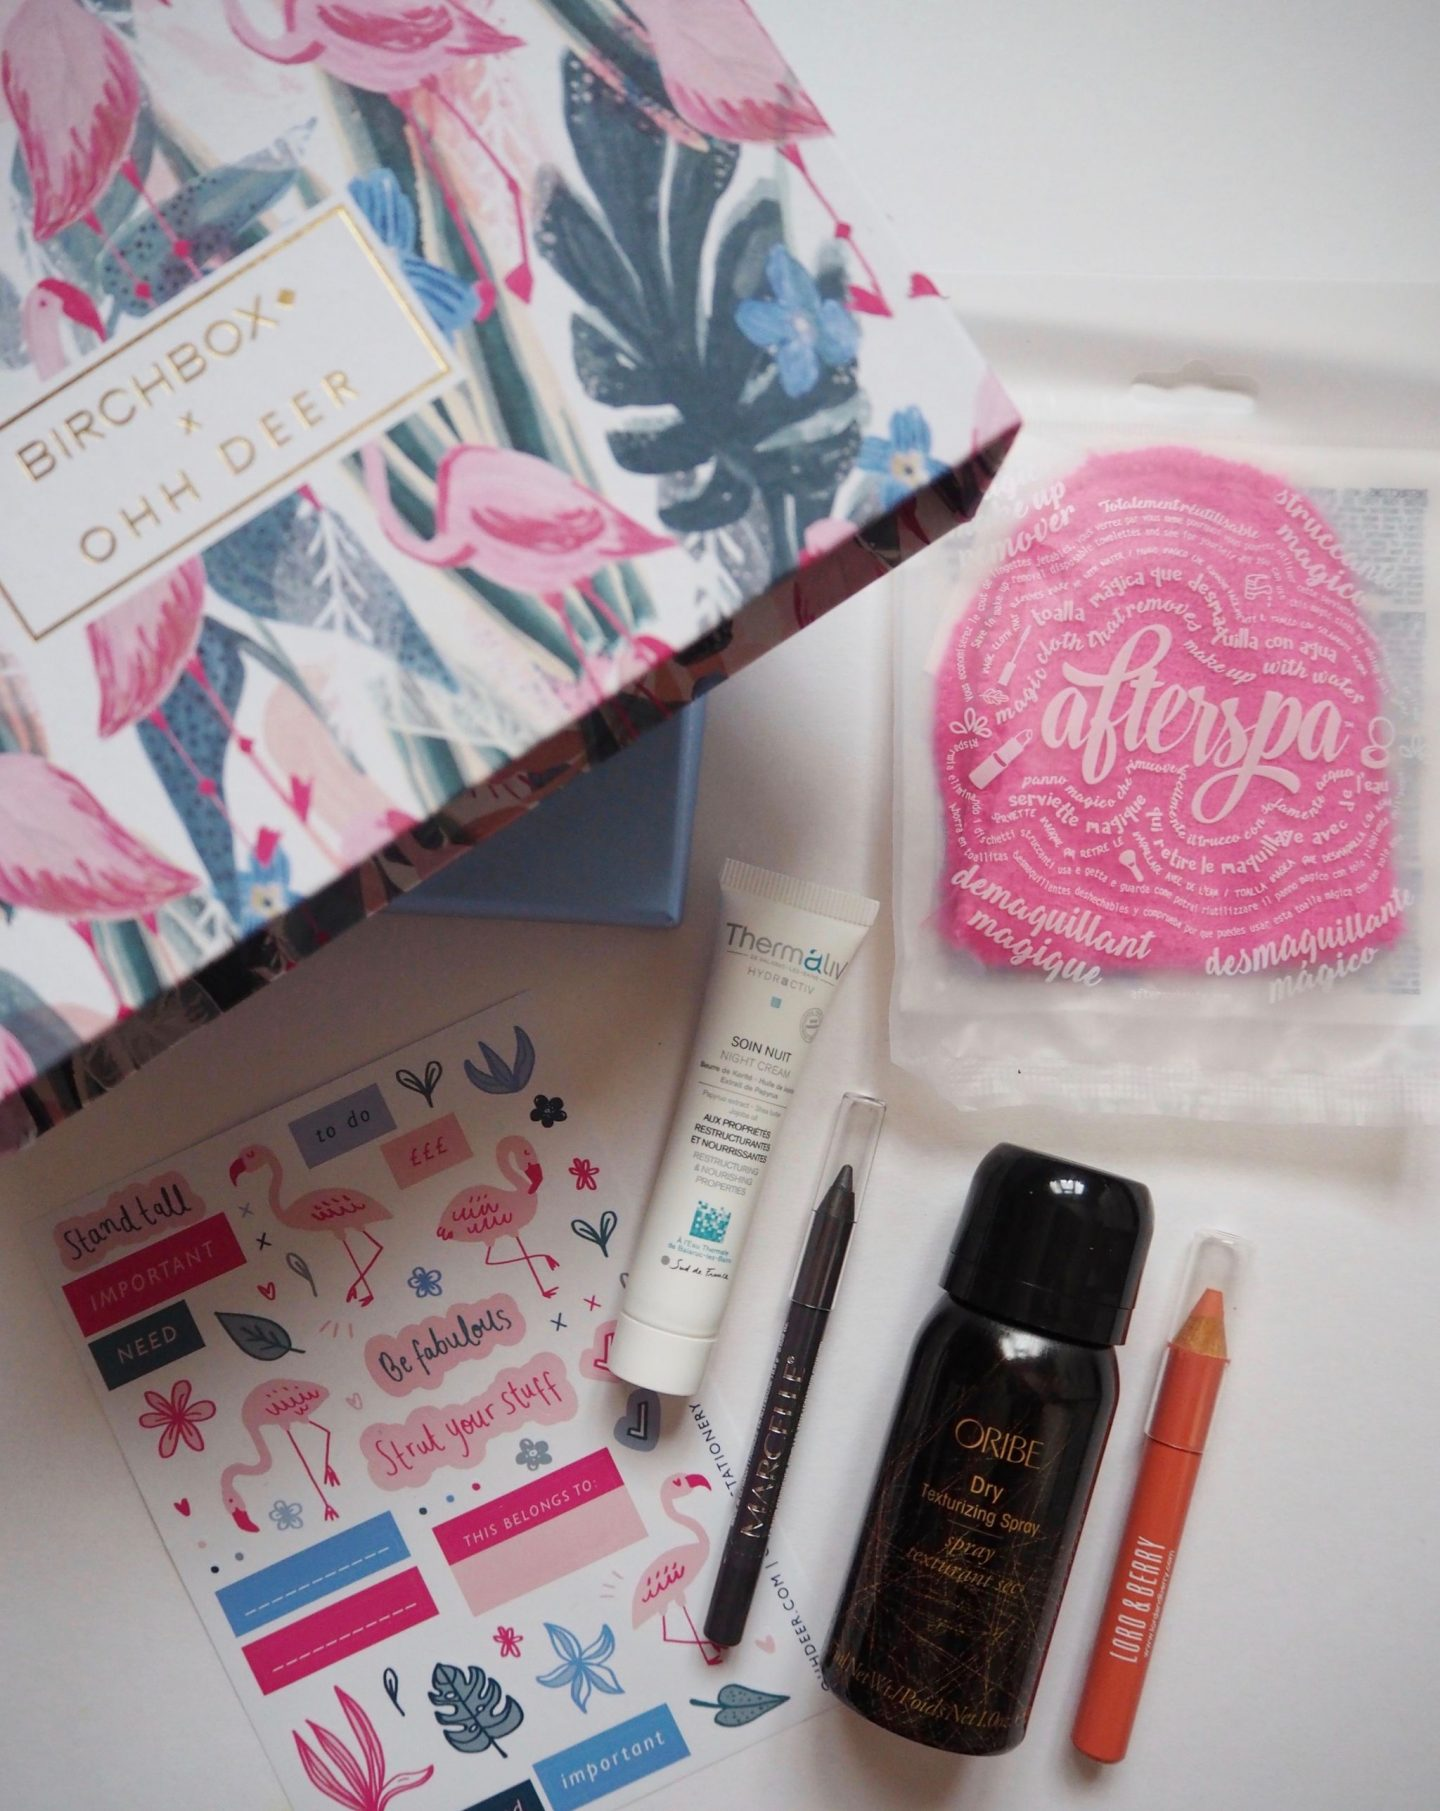 January birchbox ohh deer edition - product flatlay